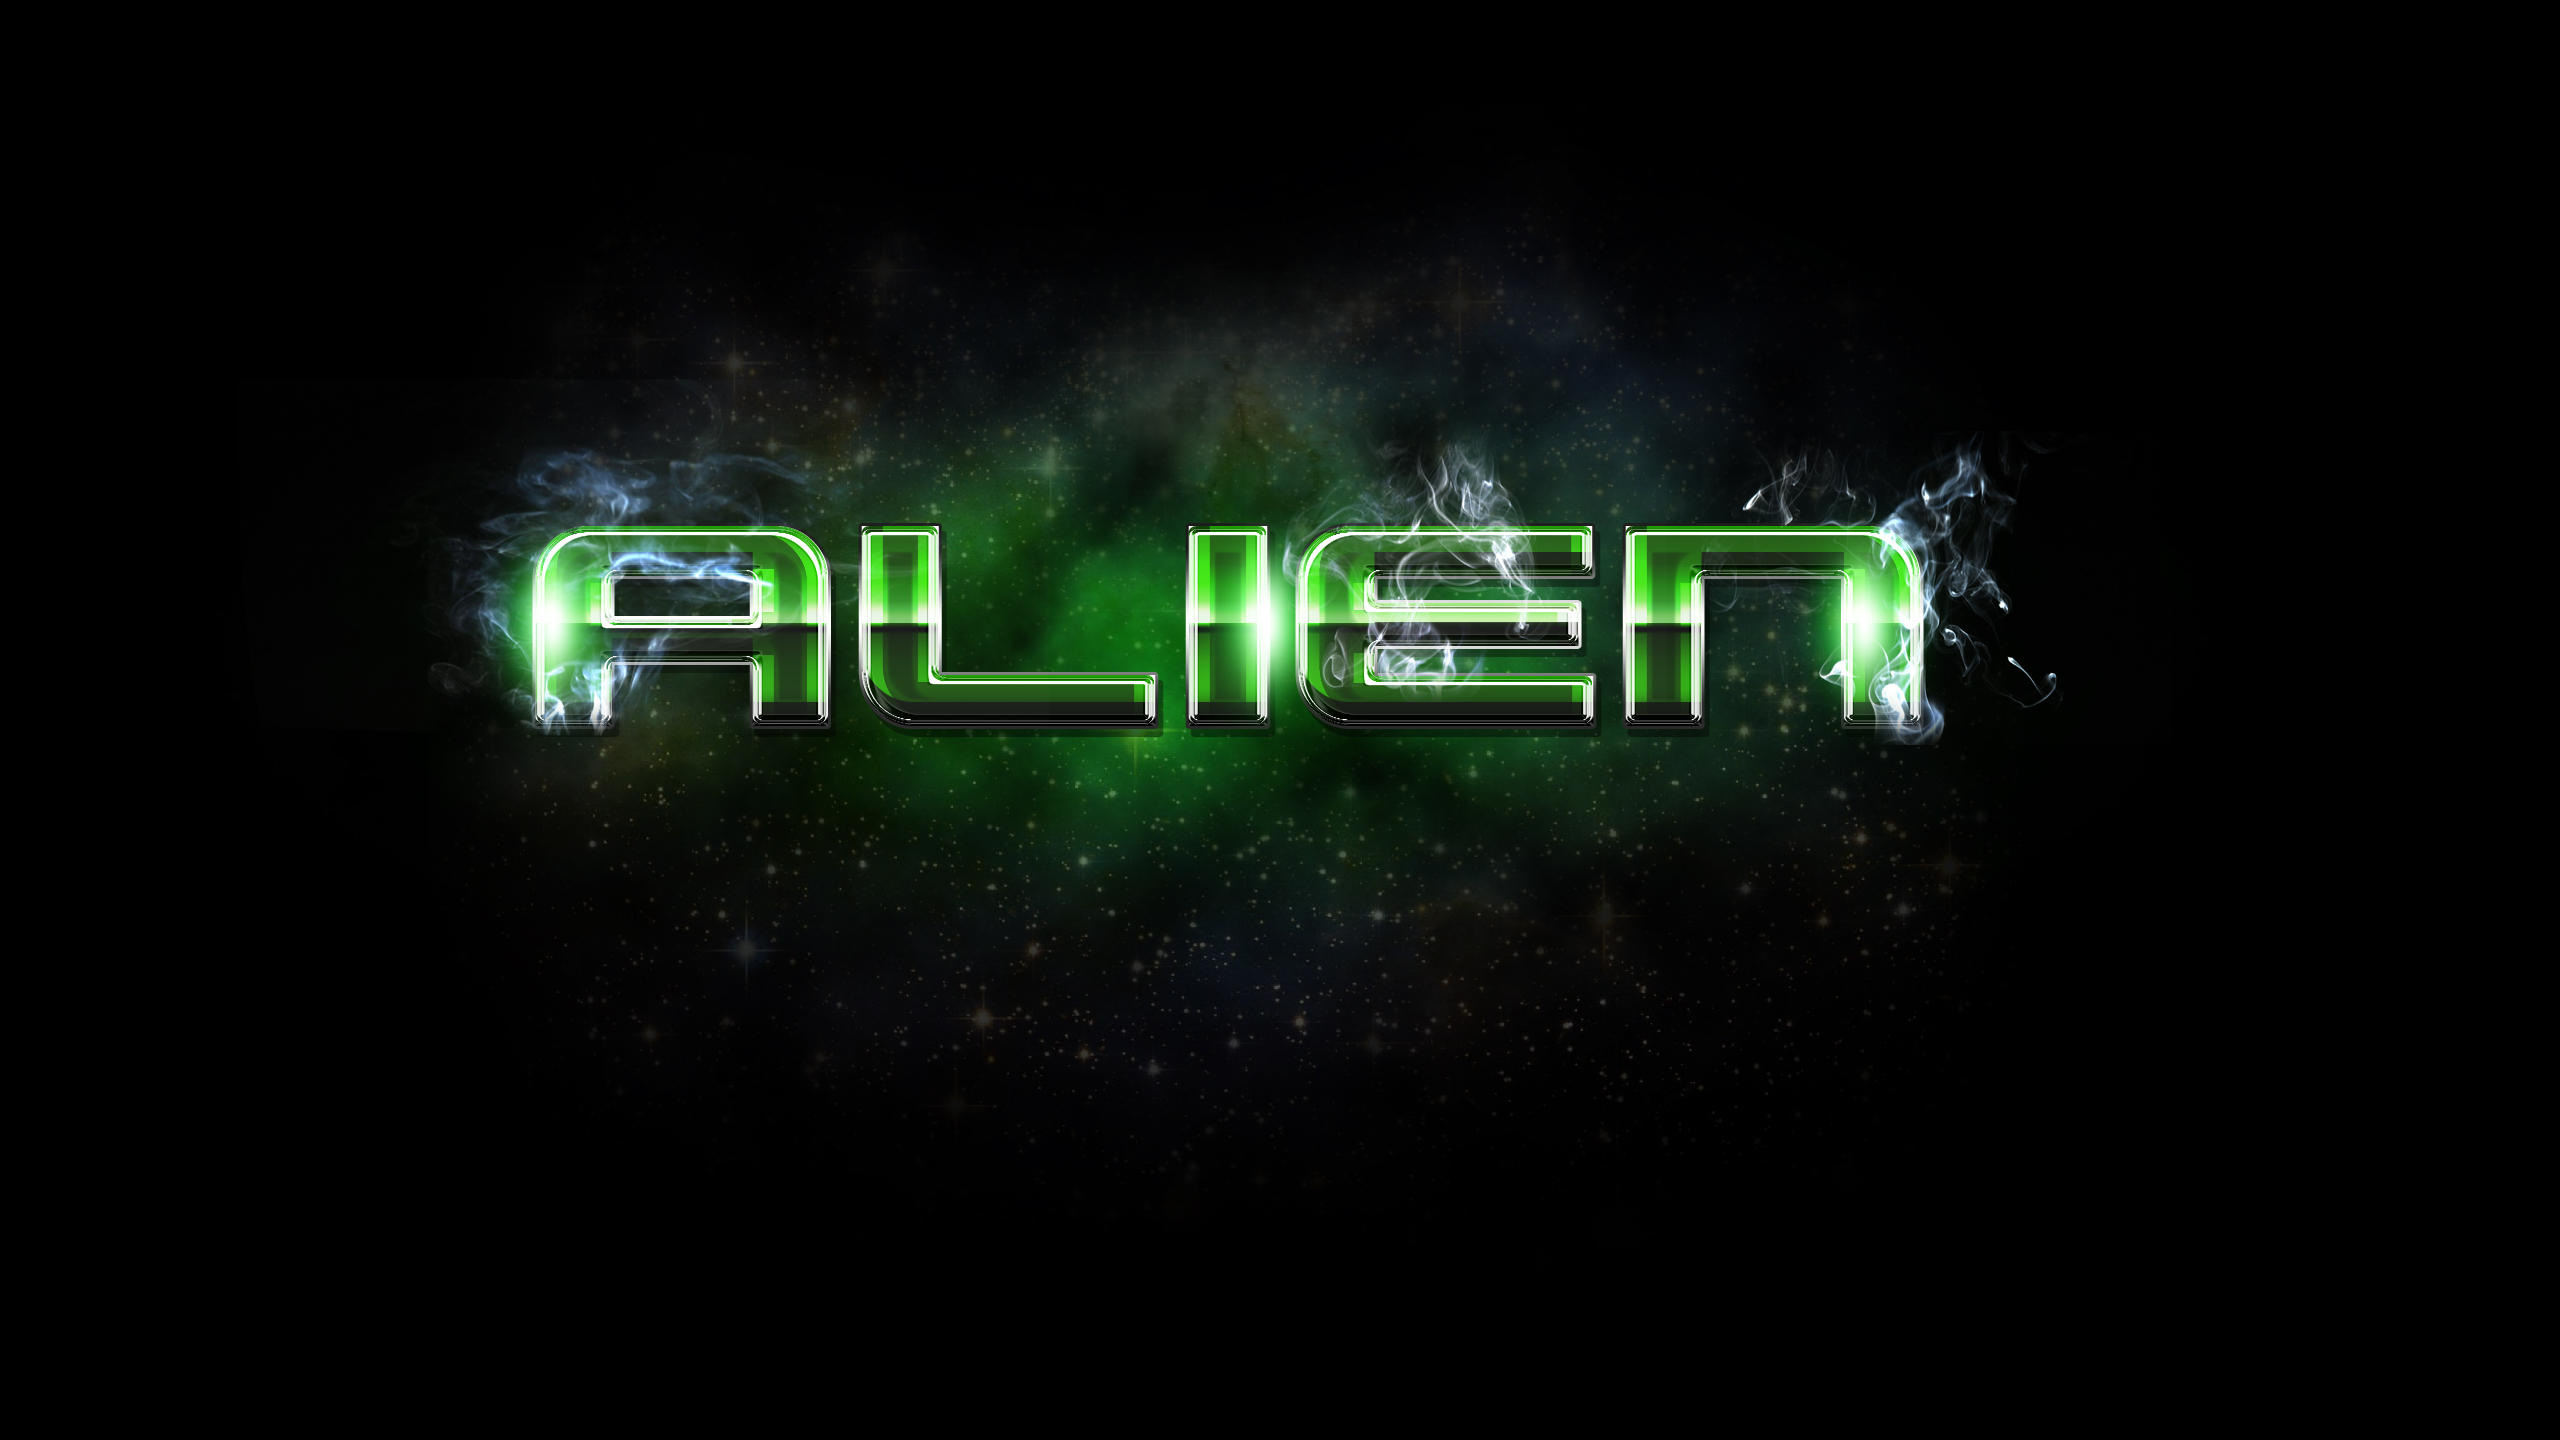 Free gold text effect photoshop tutorial by survivorcz on deviantart alien style free by xiox231 baditri Image collections